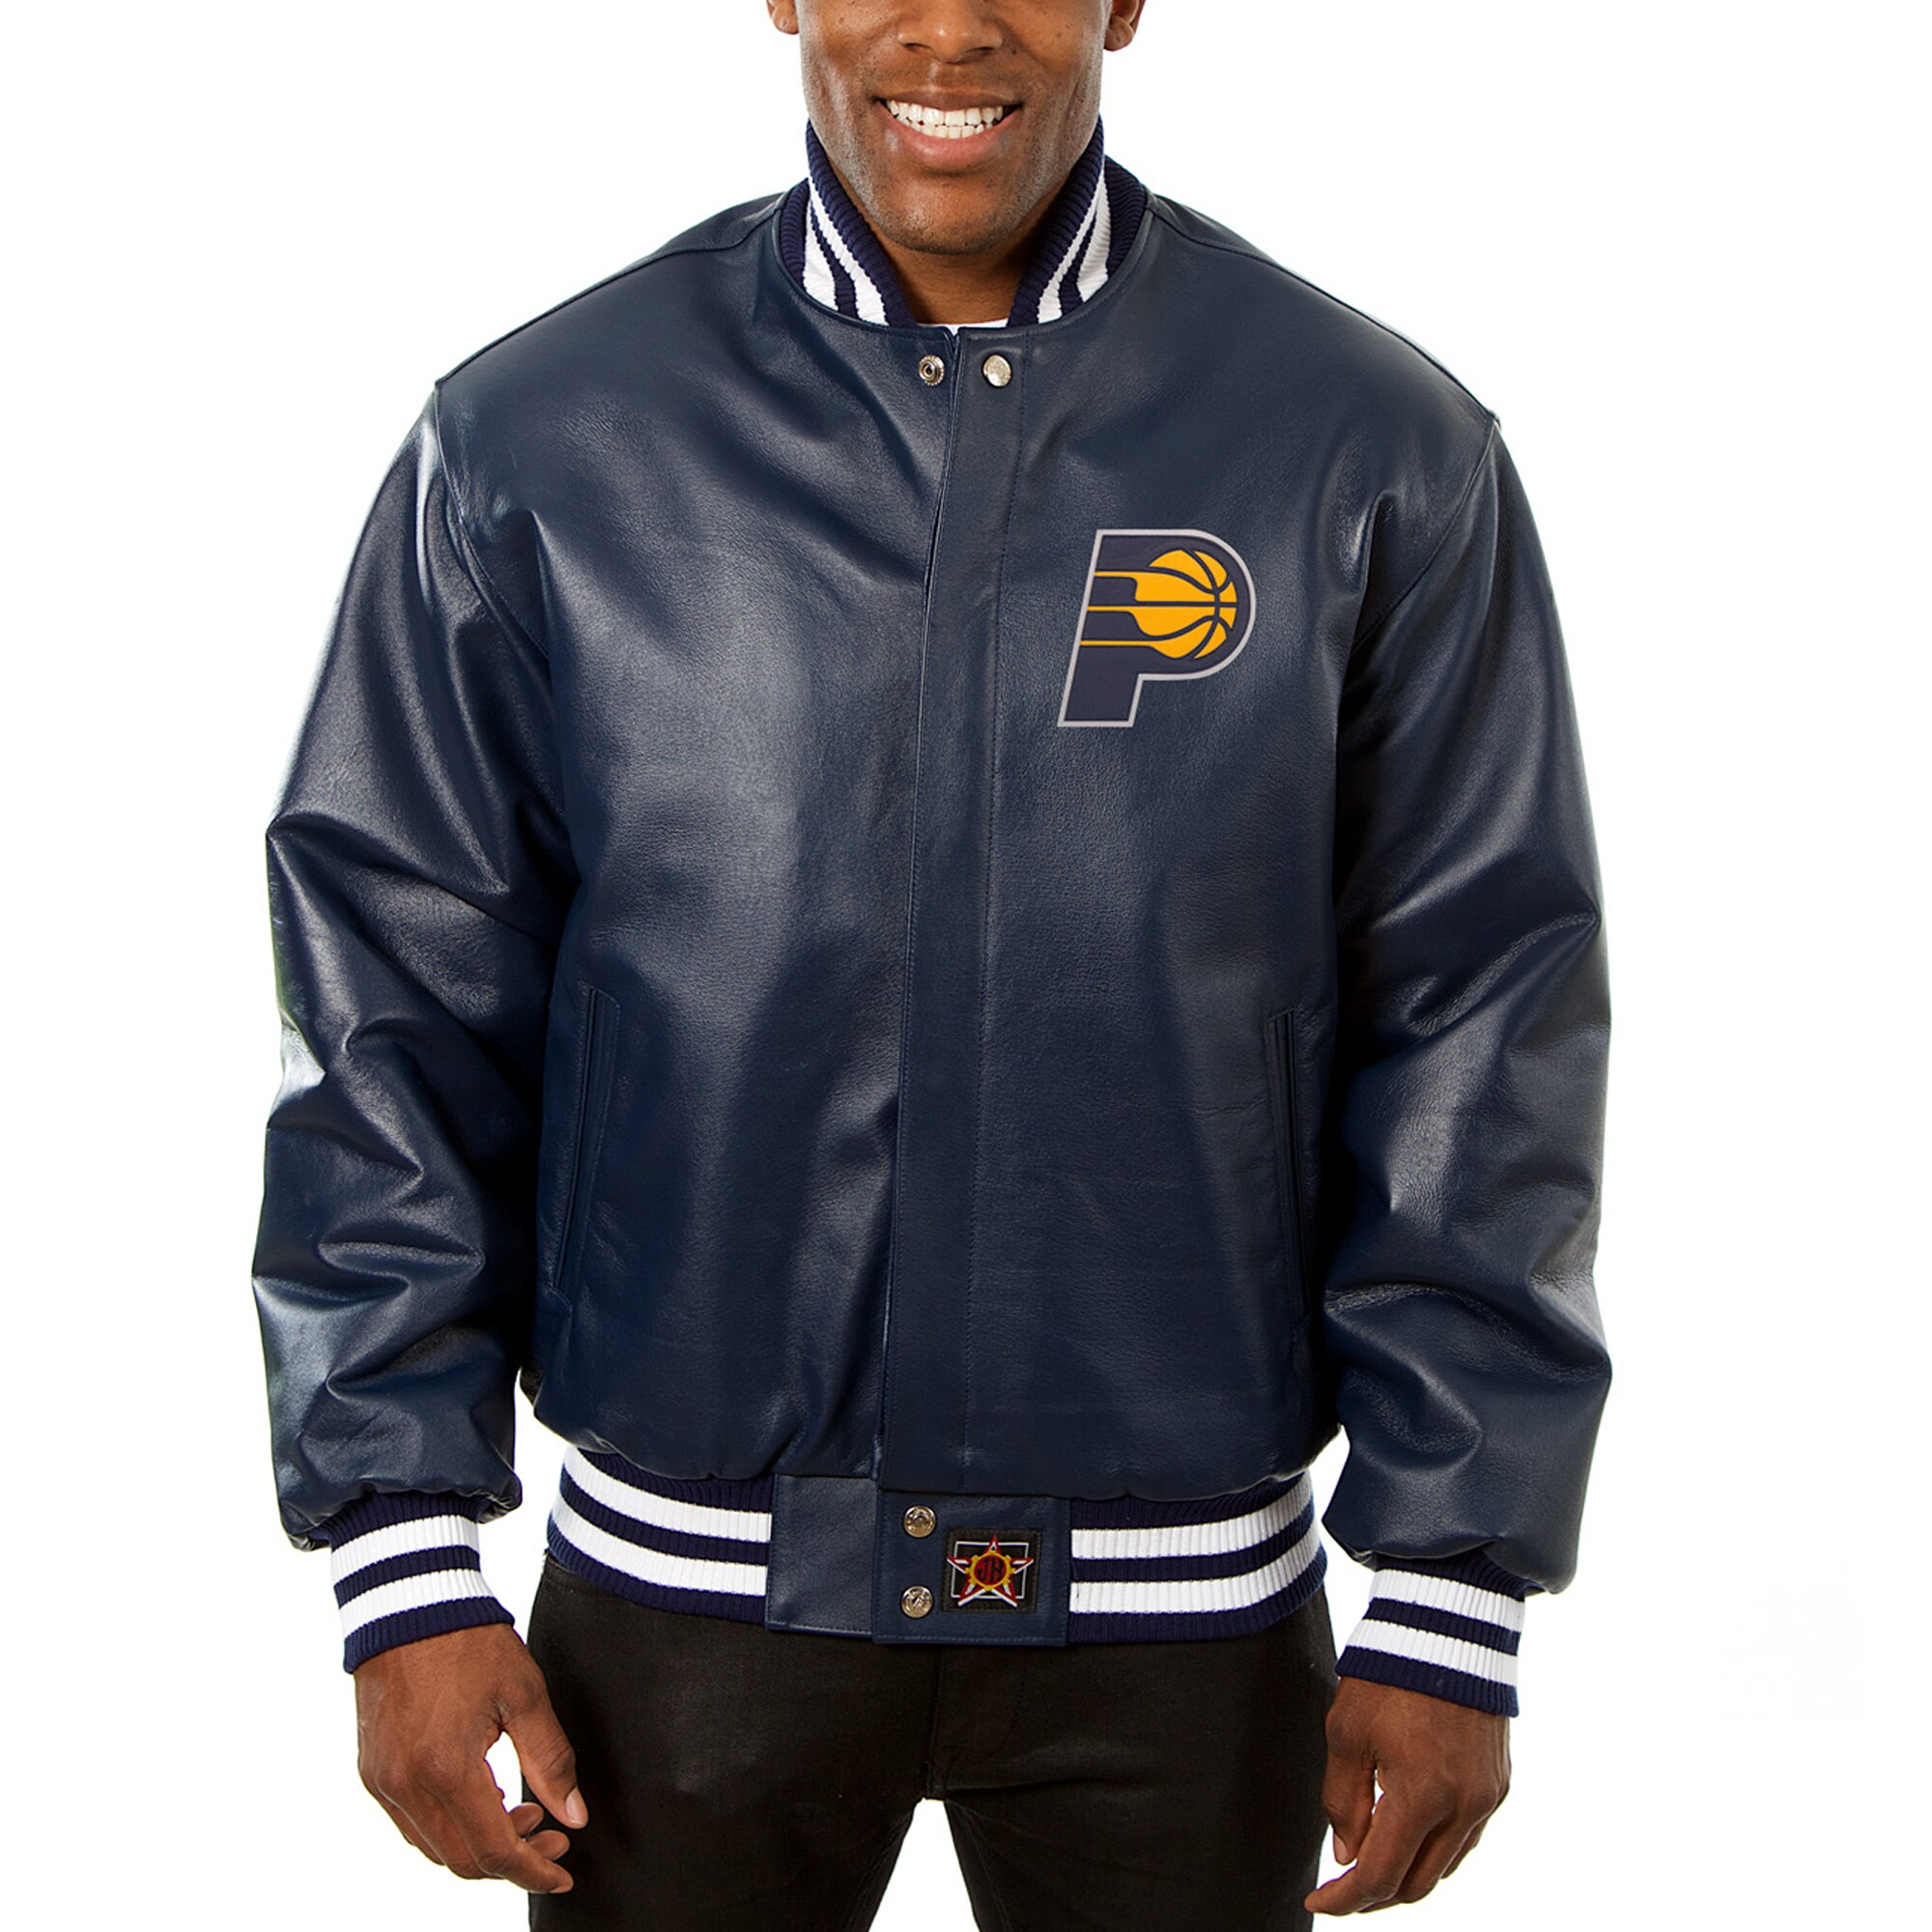 Indiana Pacers JH Design Big & Tall All-Leather Full-Snap Jacket - Navy